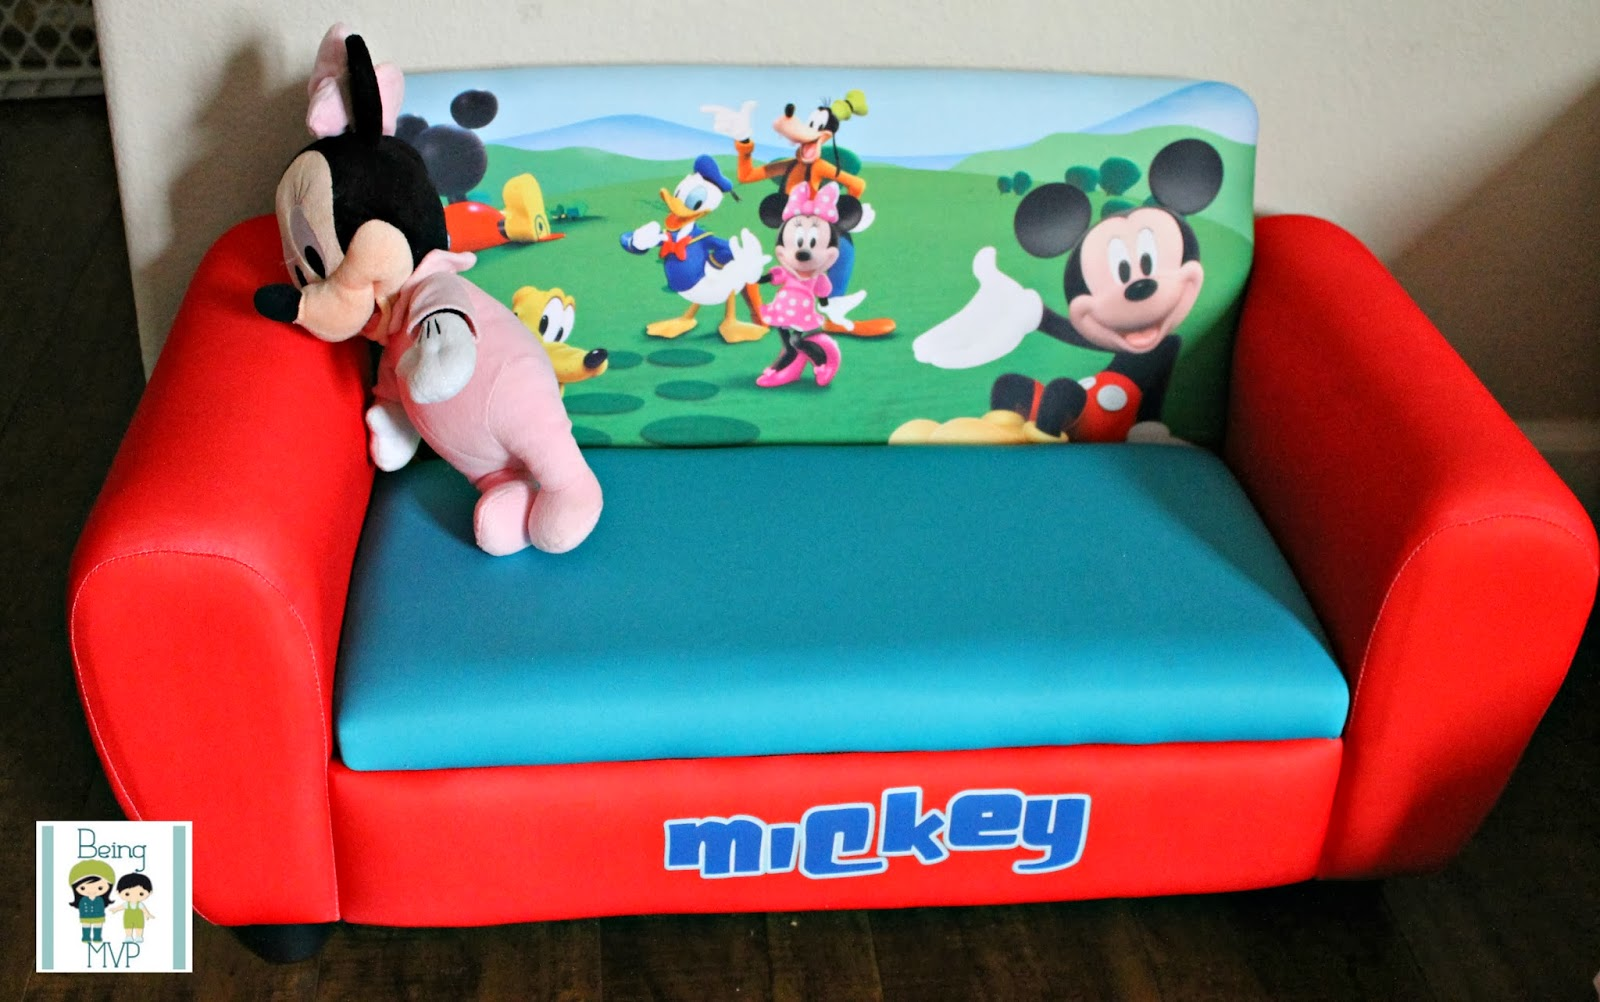 Mickey Mouse Upholstered Sofa for Tiny Tots to Chill On @deltachildren & being MVP: Mickey Mouse Upholstered Sofa for Tiny Tots to Chill On ...